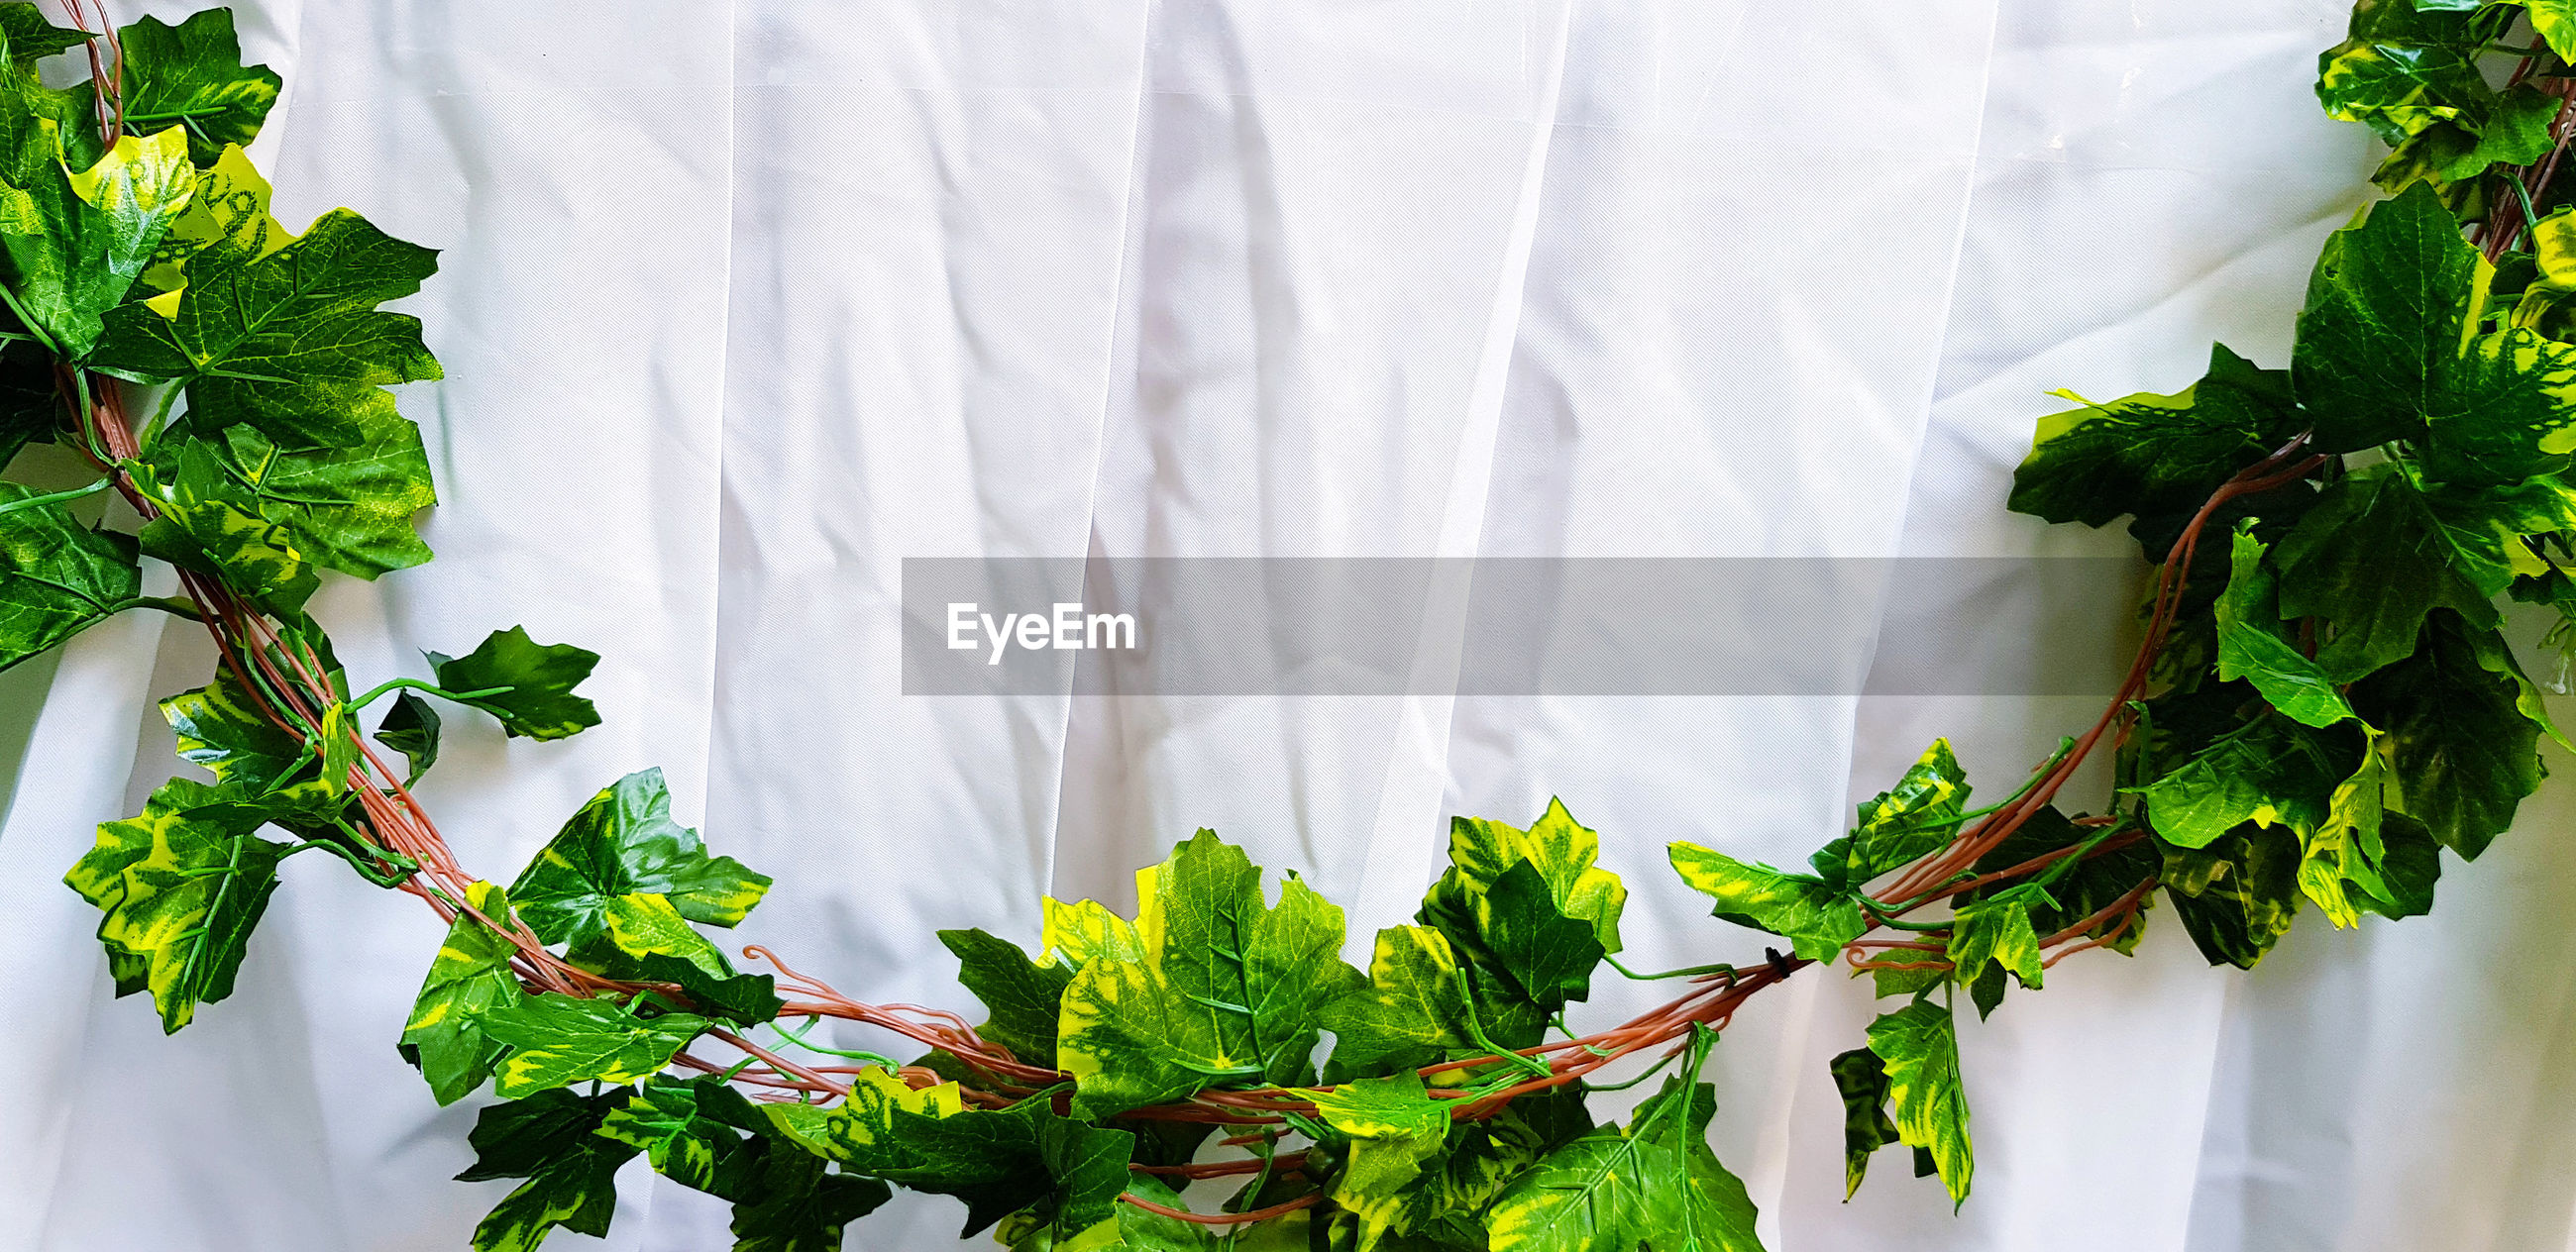 Close-up of potted plant on white curtain background